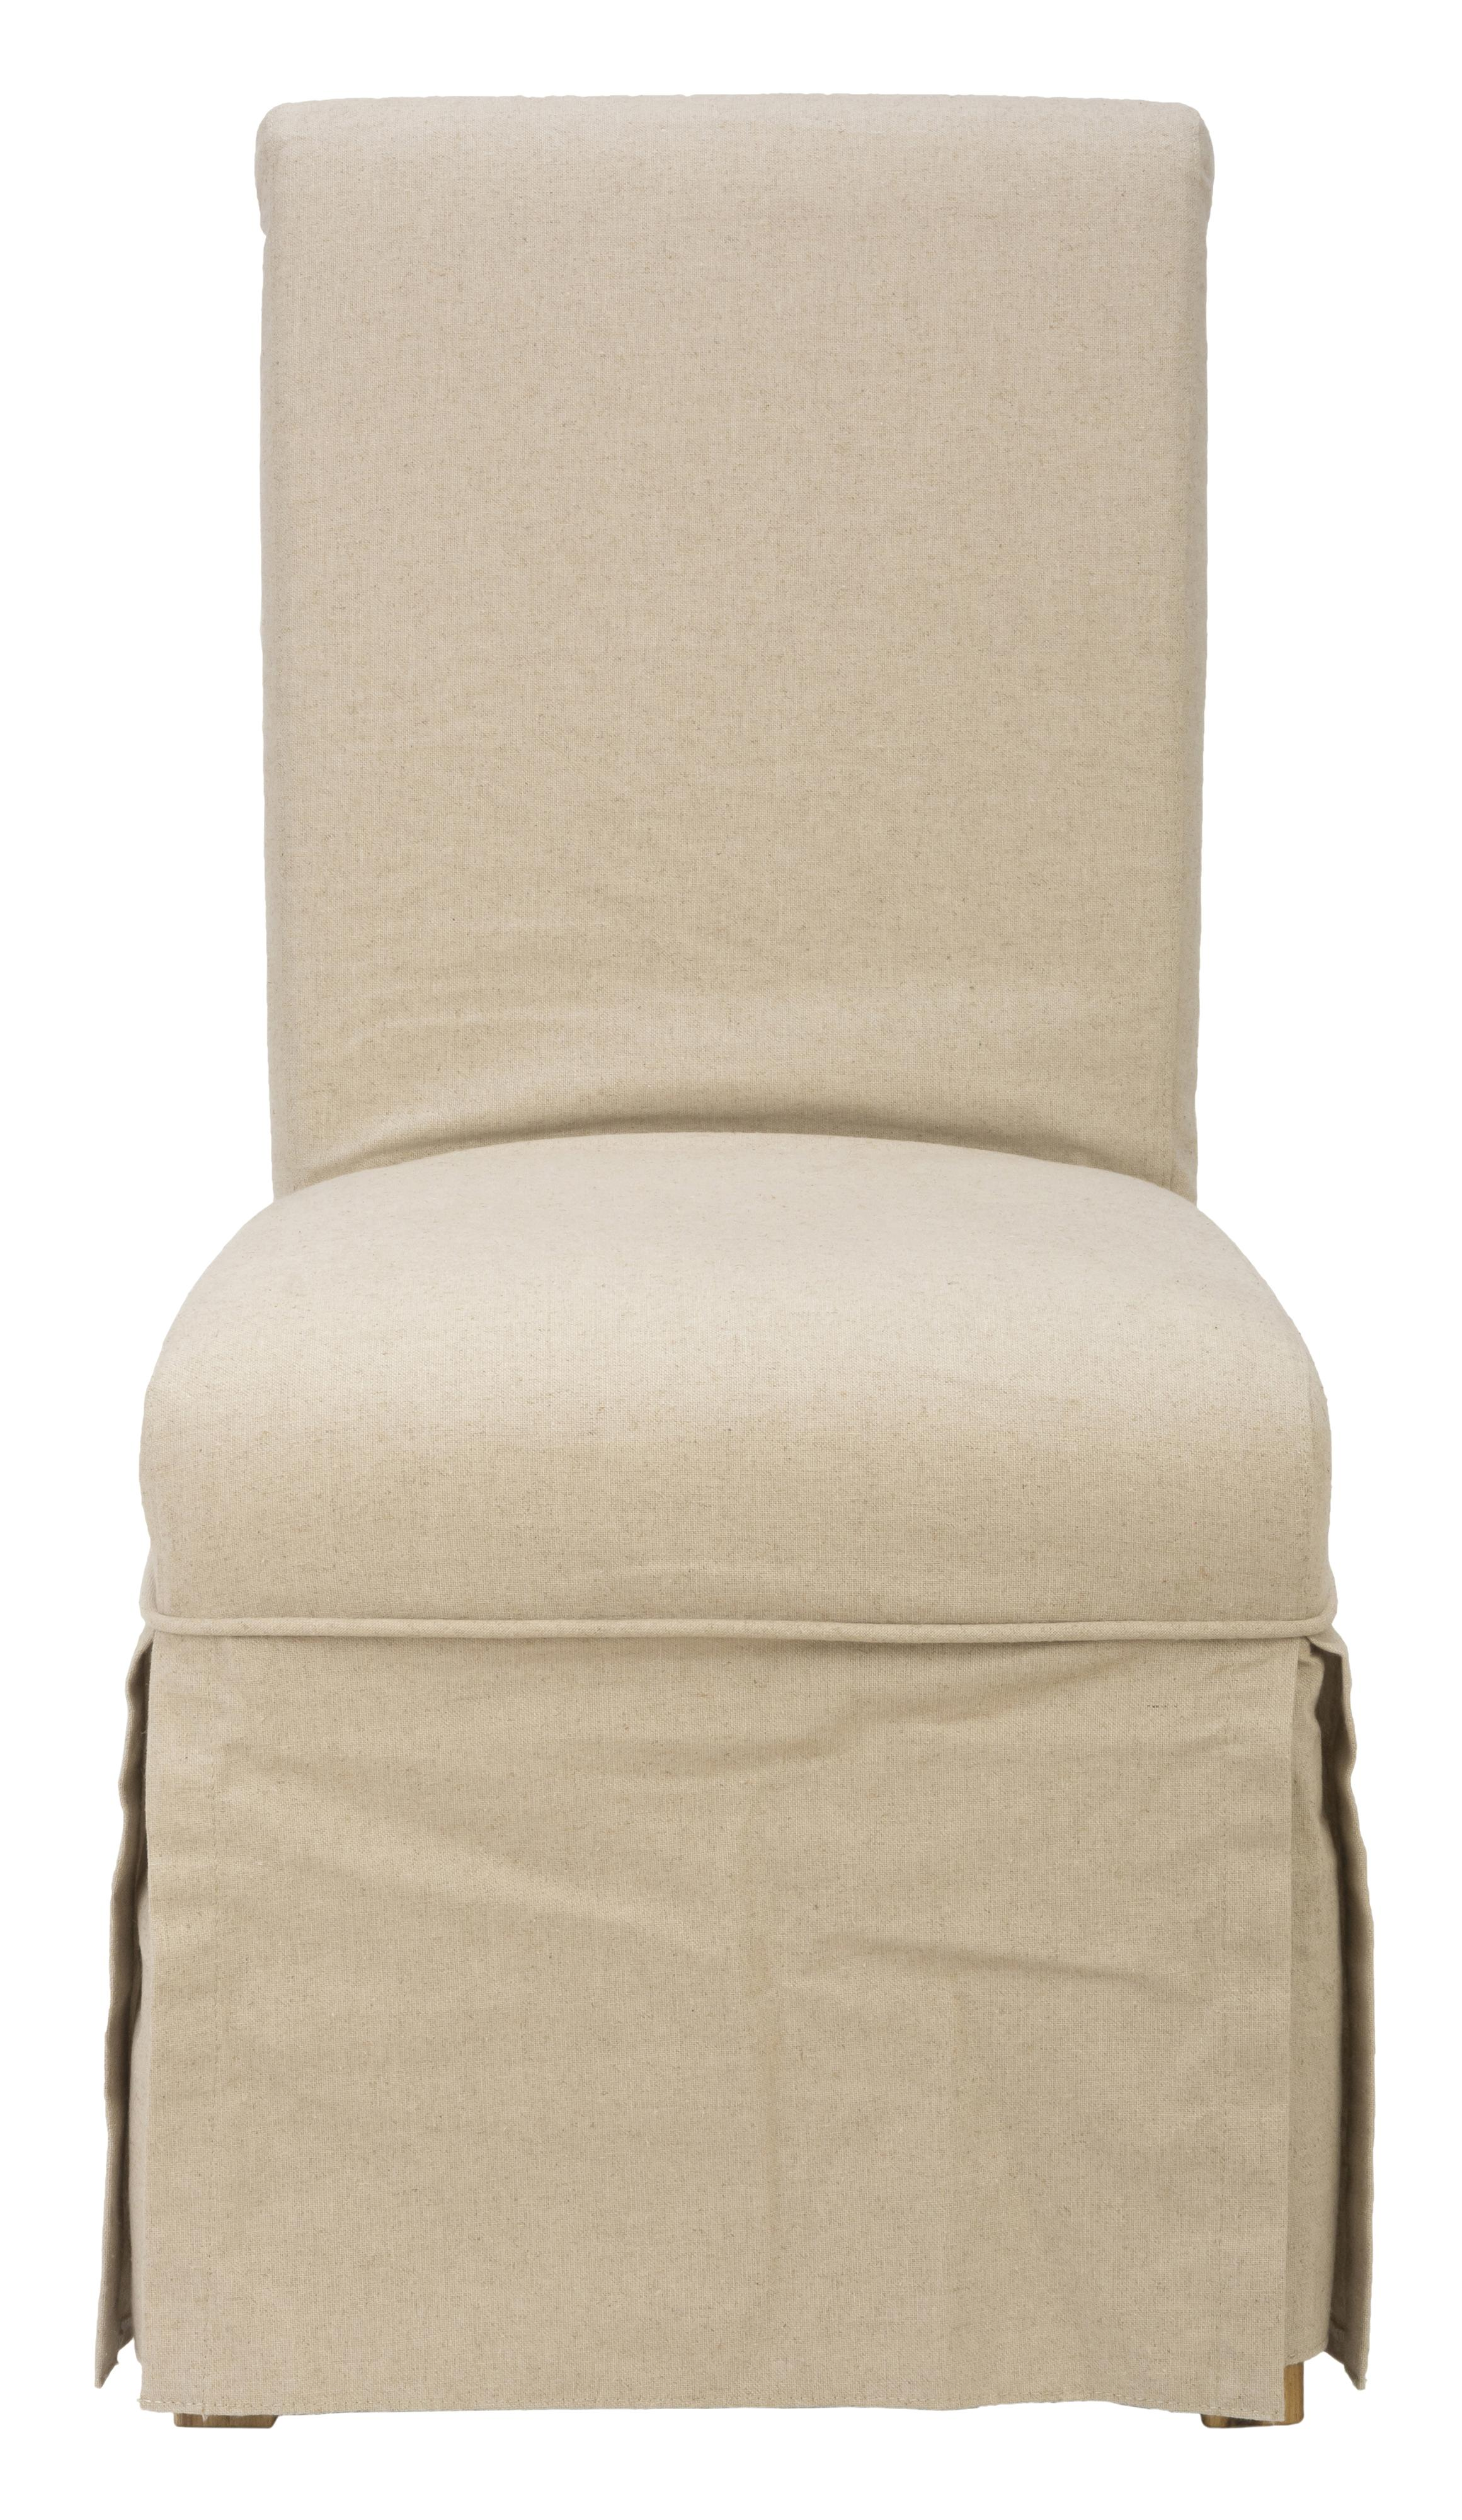 Slater Mill Pine Slipcover Skirted Parson Chair by Jo Furniture Co. at Ruby Gordon Home